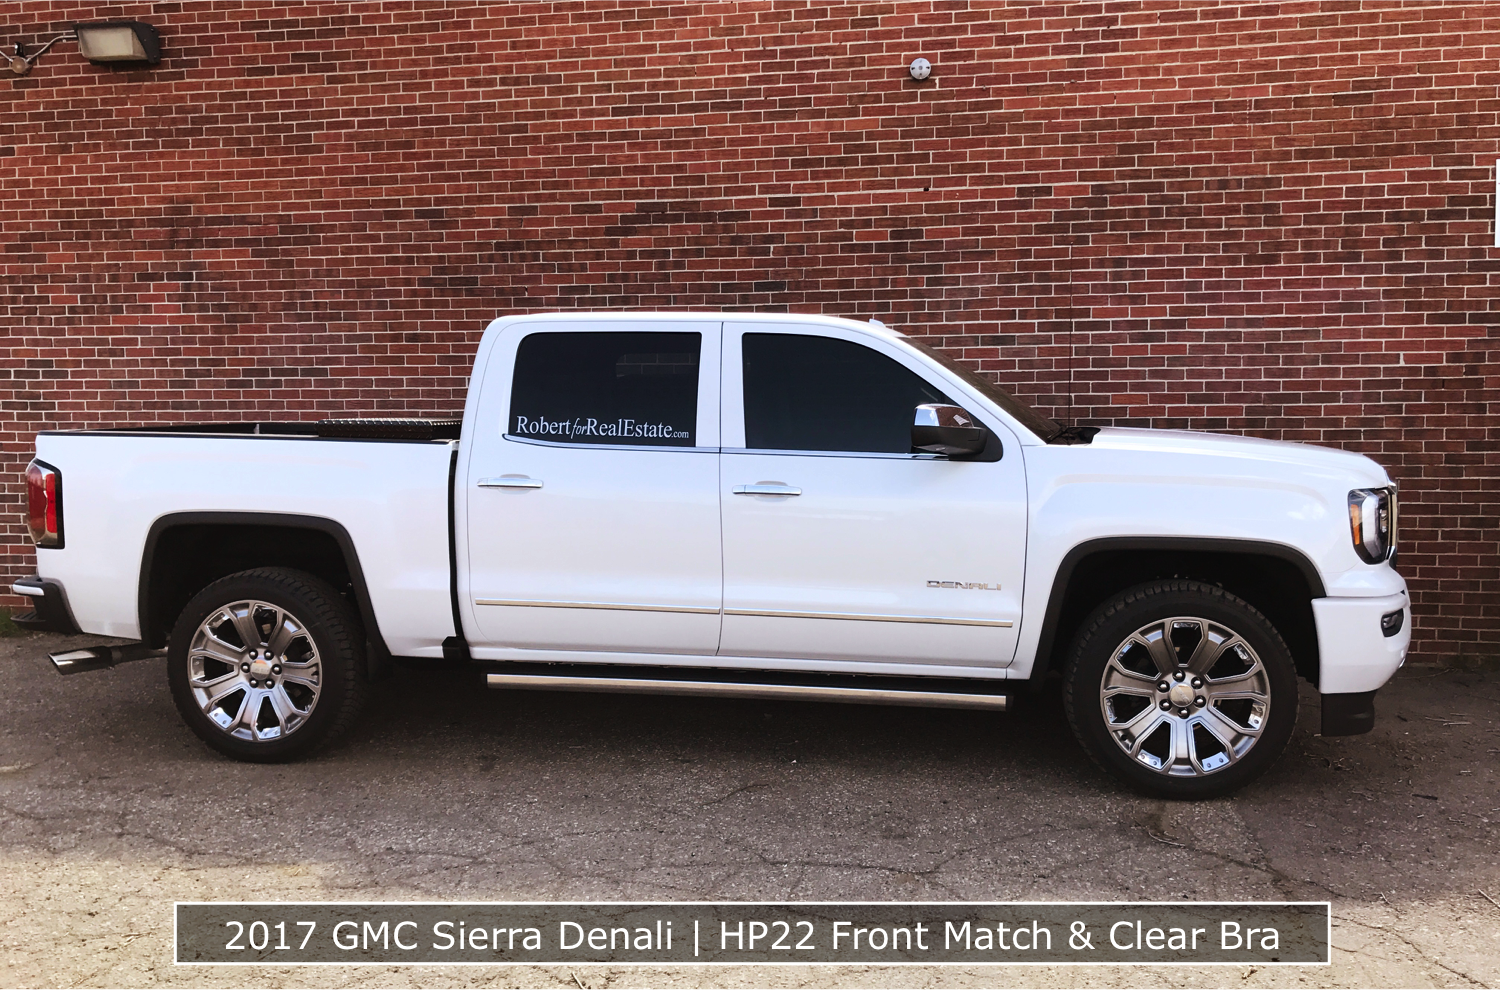 GMC Sierra Denali Clear Bra & Tint in Denver